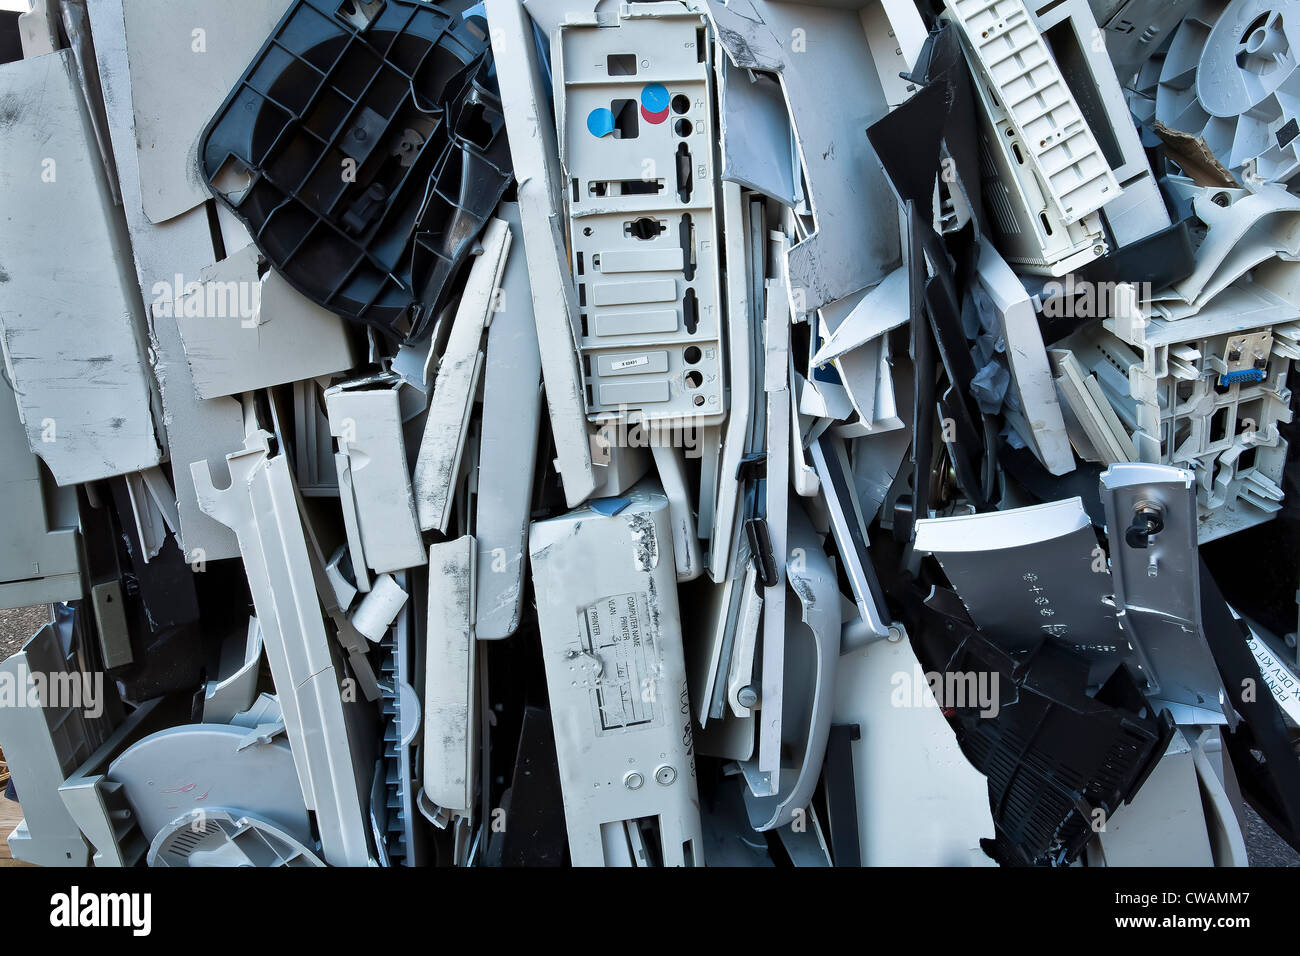 Crushed computer parts - Stock Image